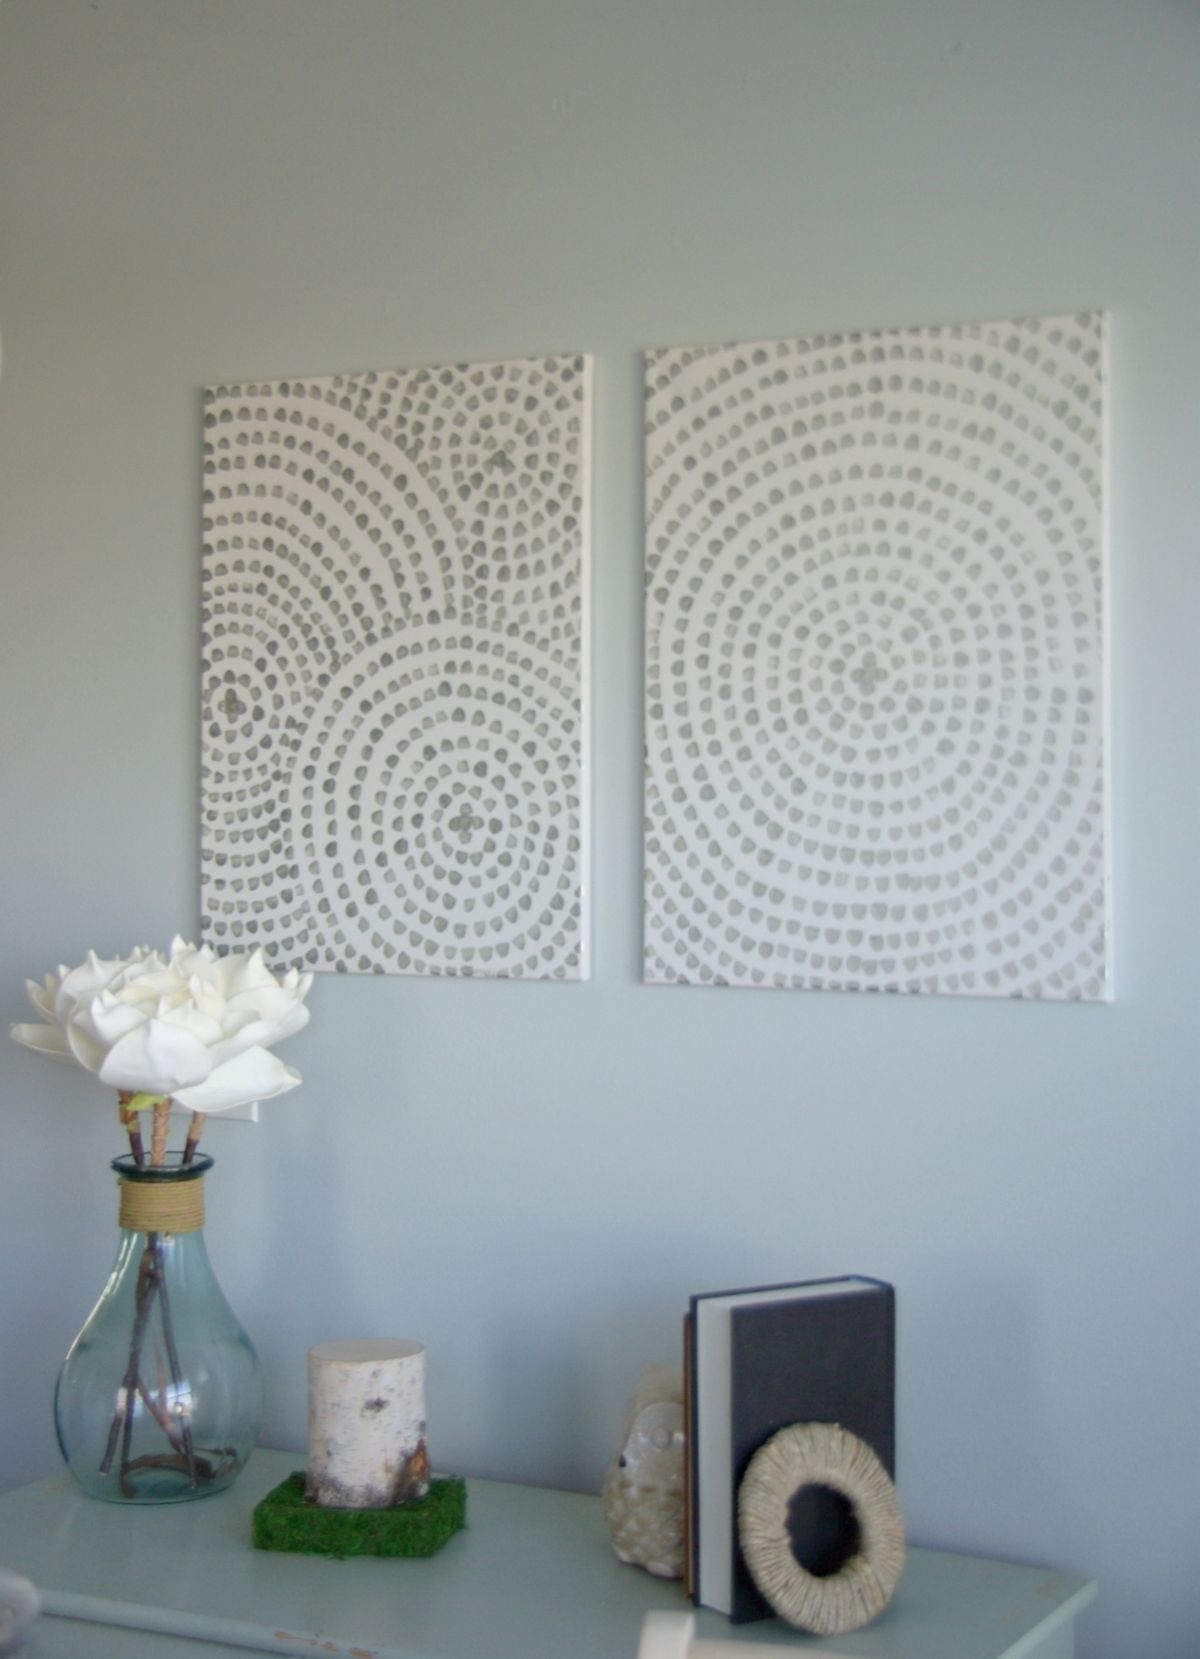 Diy Canvas Wall Art – A Low Cost Way To Add Art To Your Home | My With Best And Newest Wall Art Diy (View 7 of 20)